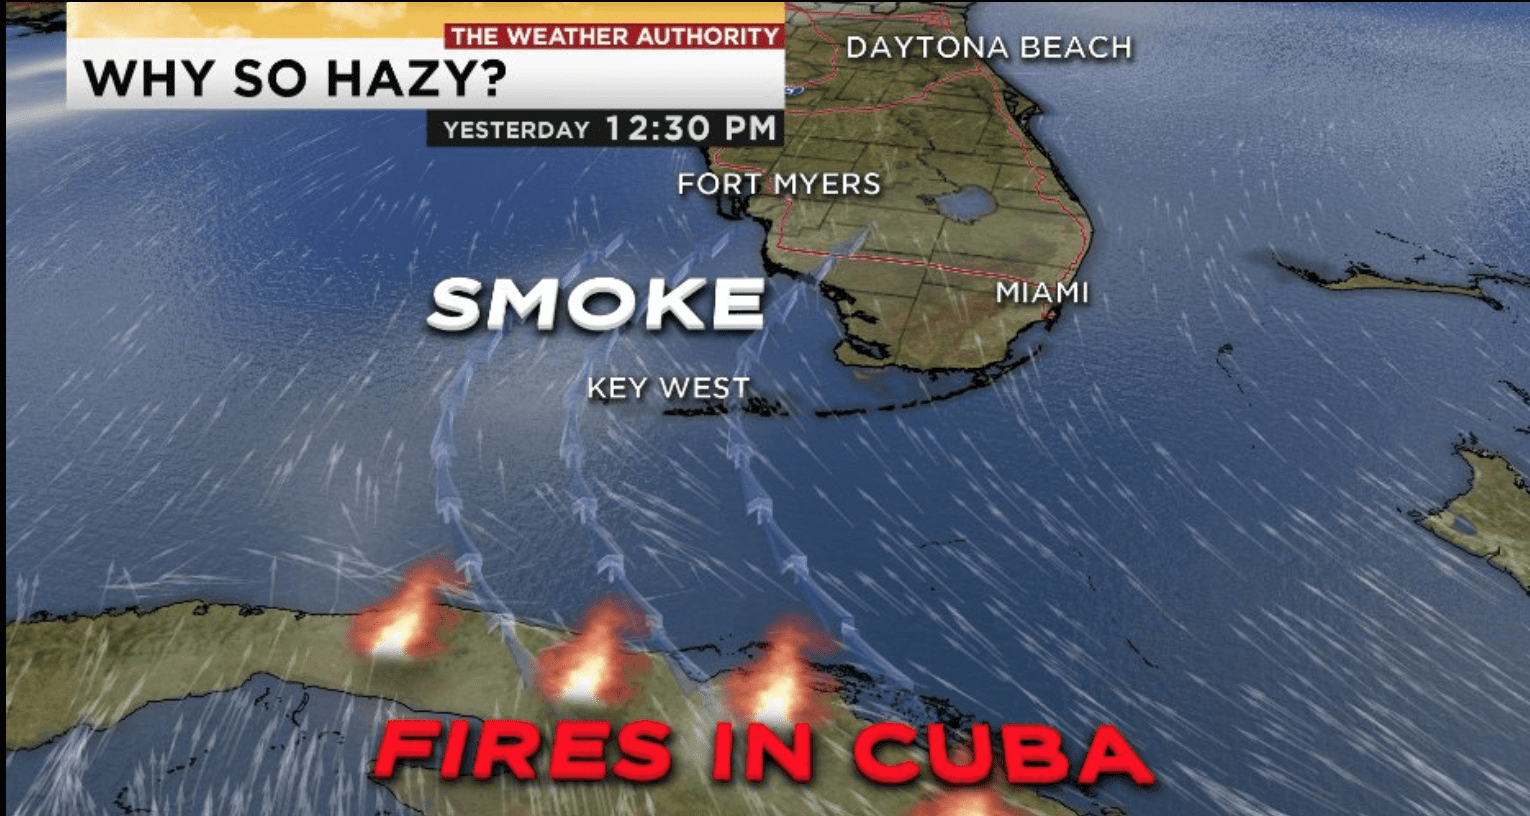 Why so hazy in Florida? The burning answer is hundreds of miles away